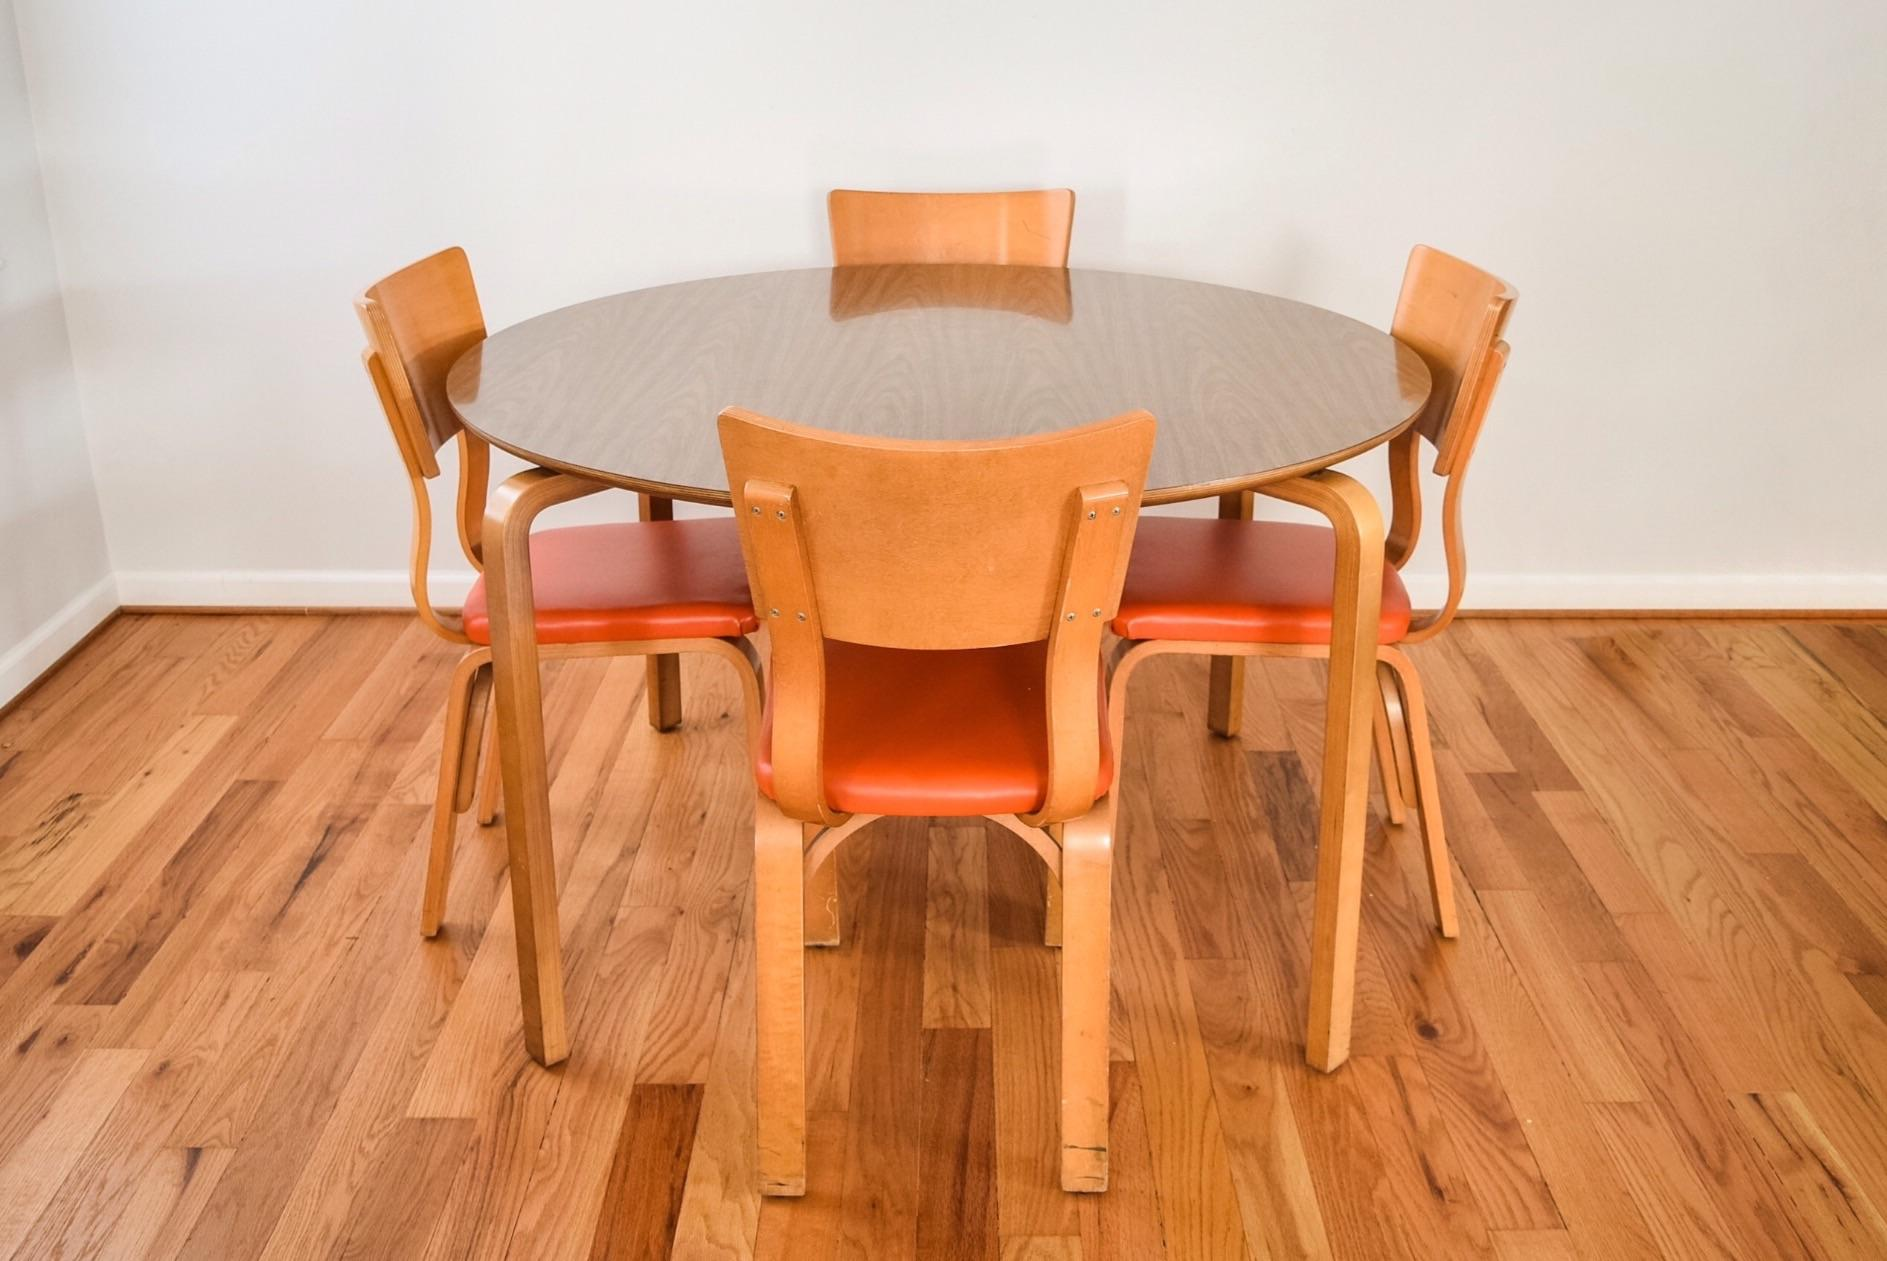 Charming Mid Century Thonet Bentwood Table U0026 Chairs   Image 3 Of 10